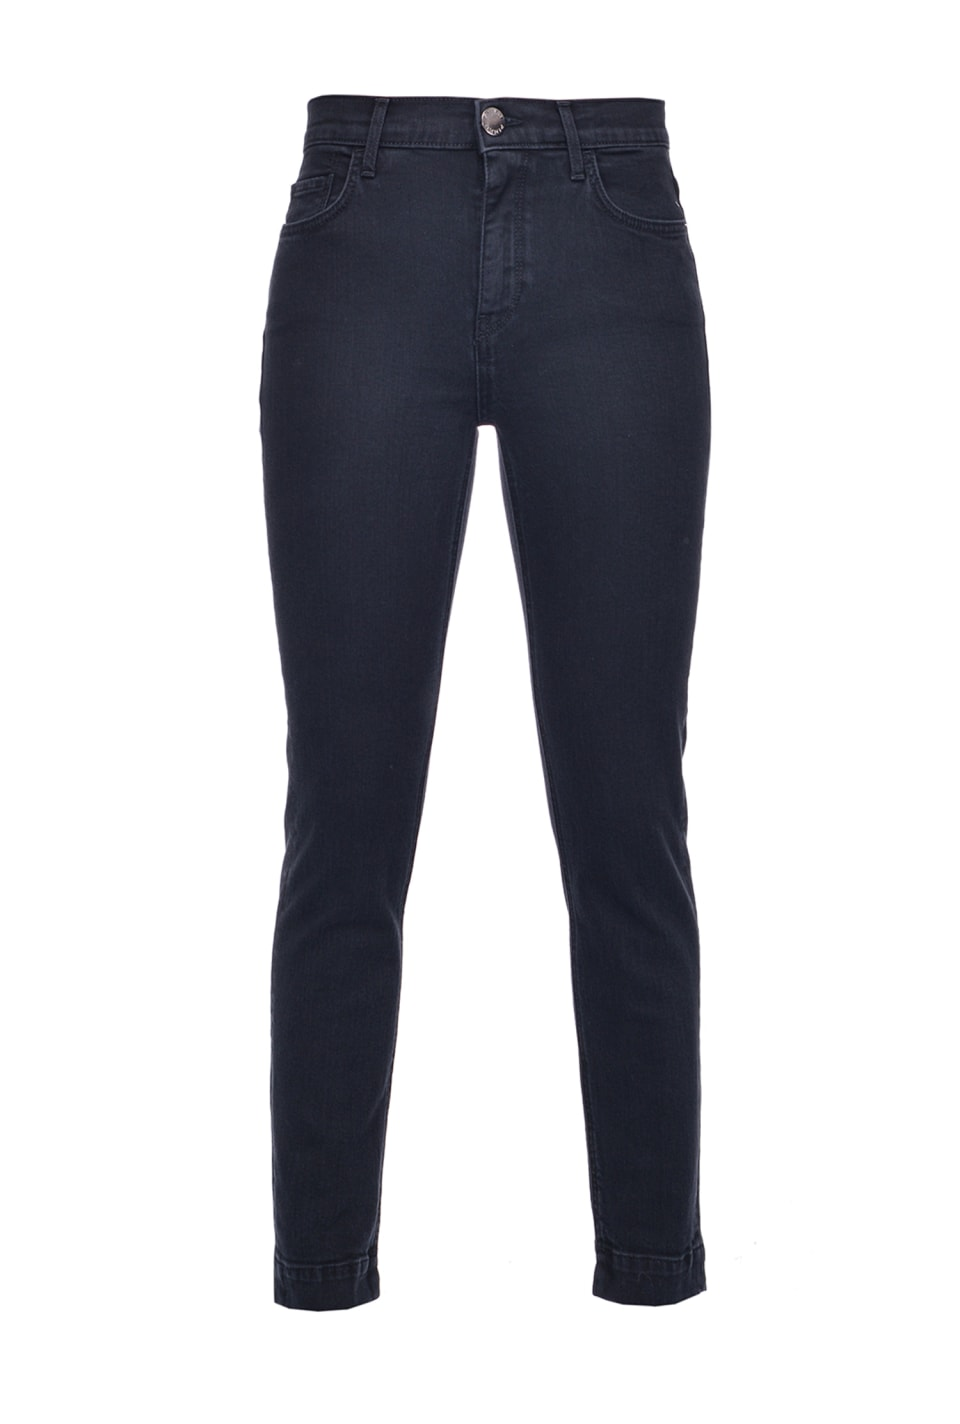 Skinny jeans in black stretch denim